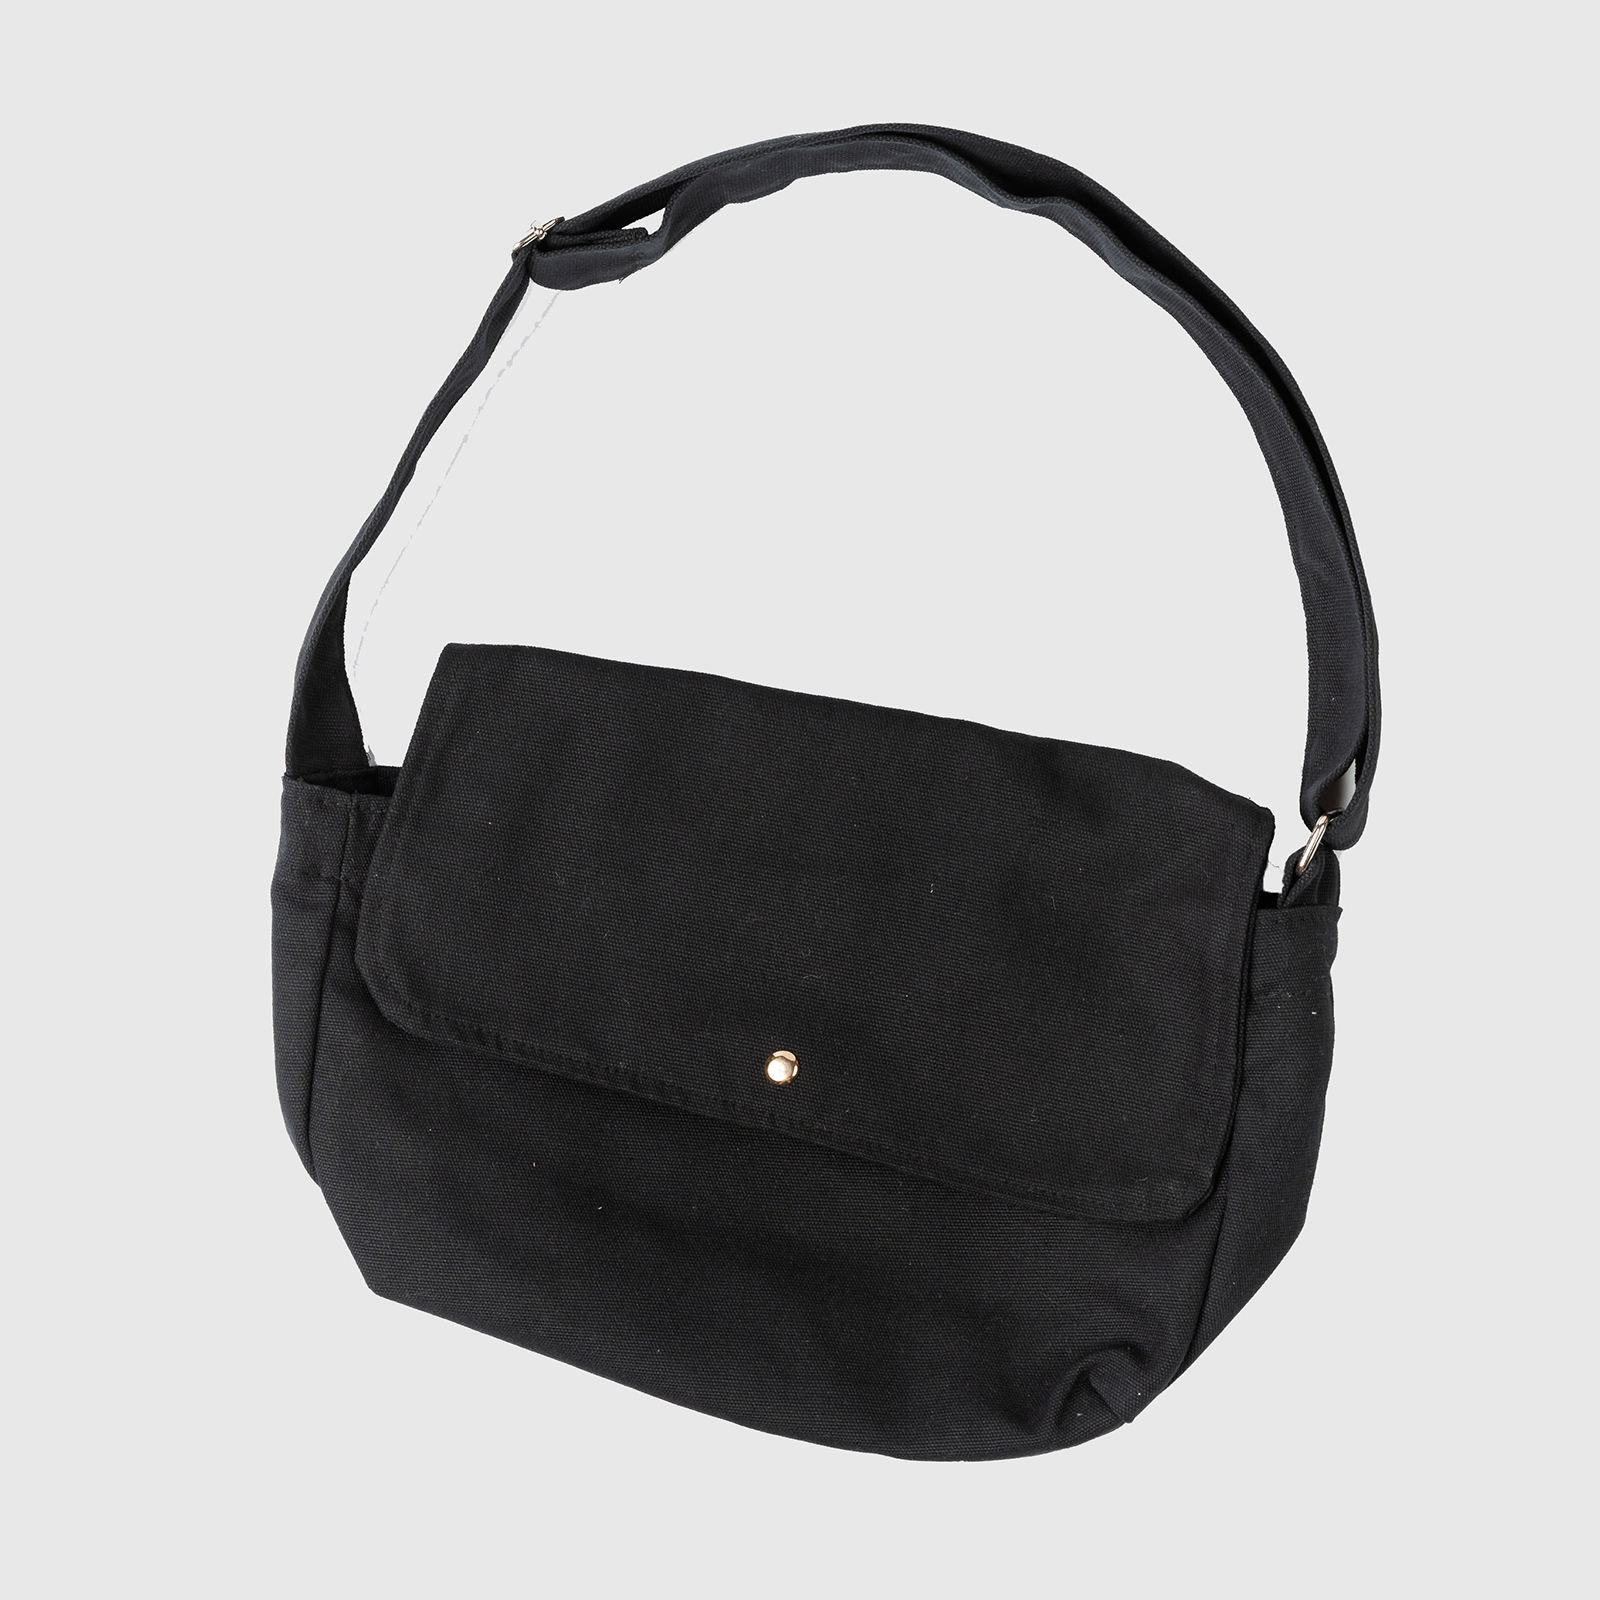 Unisex Black Crossbody Canvas Bags